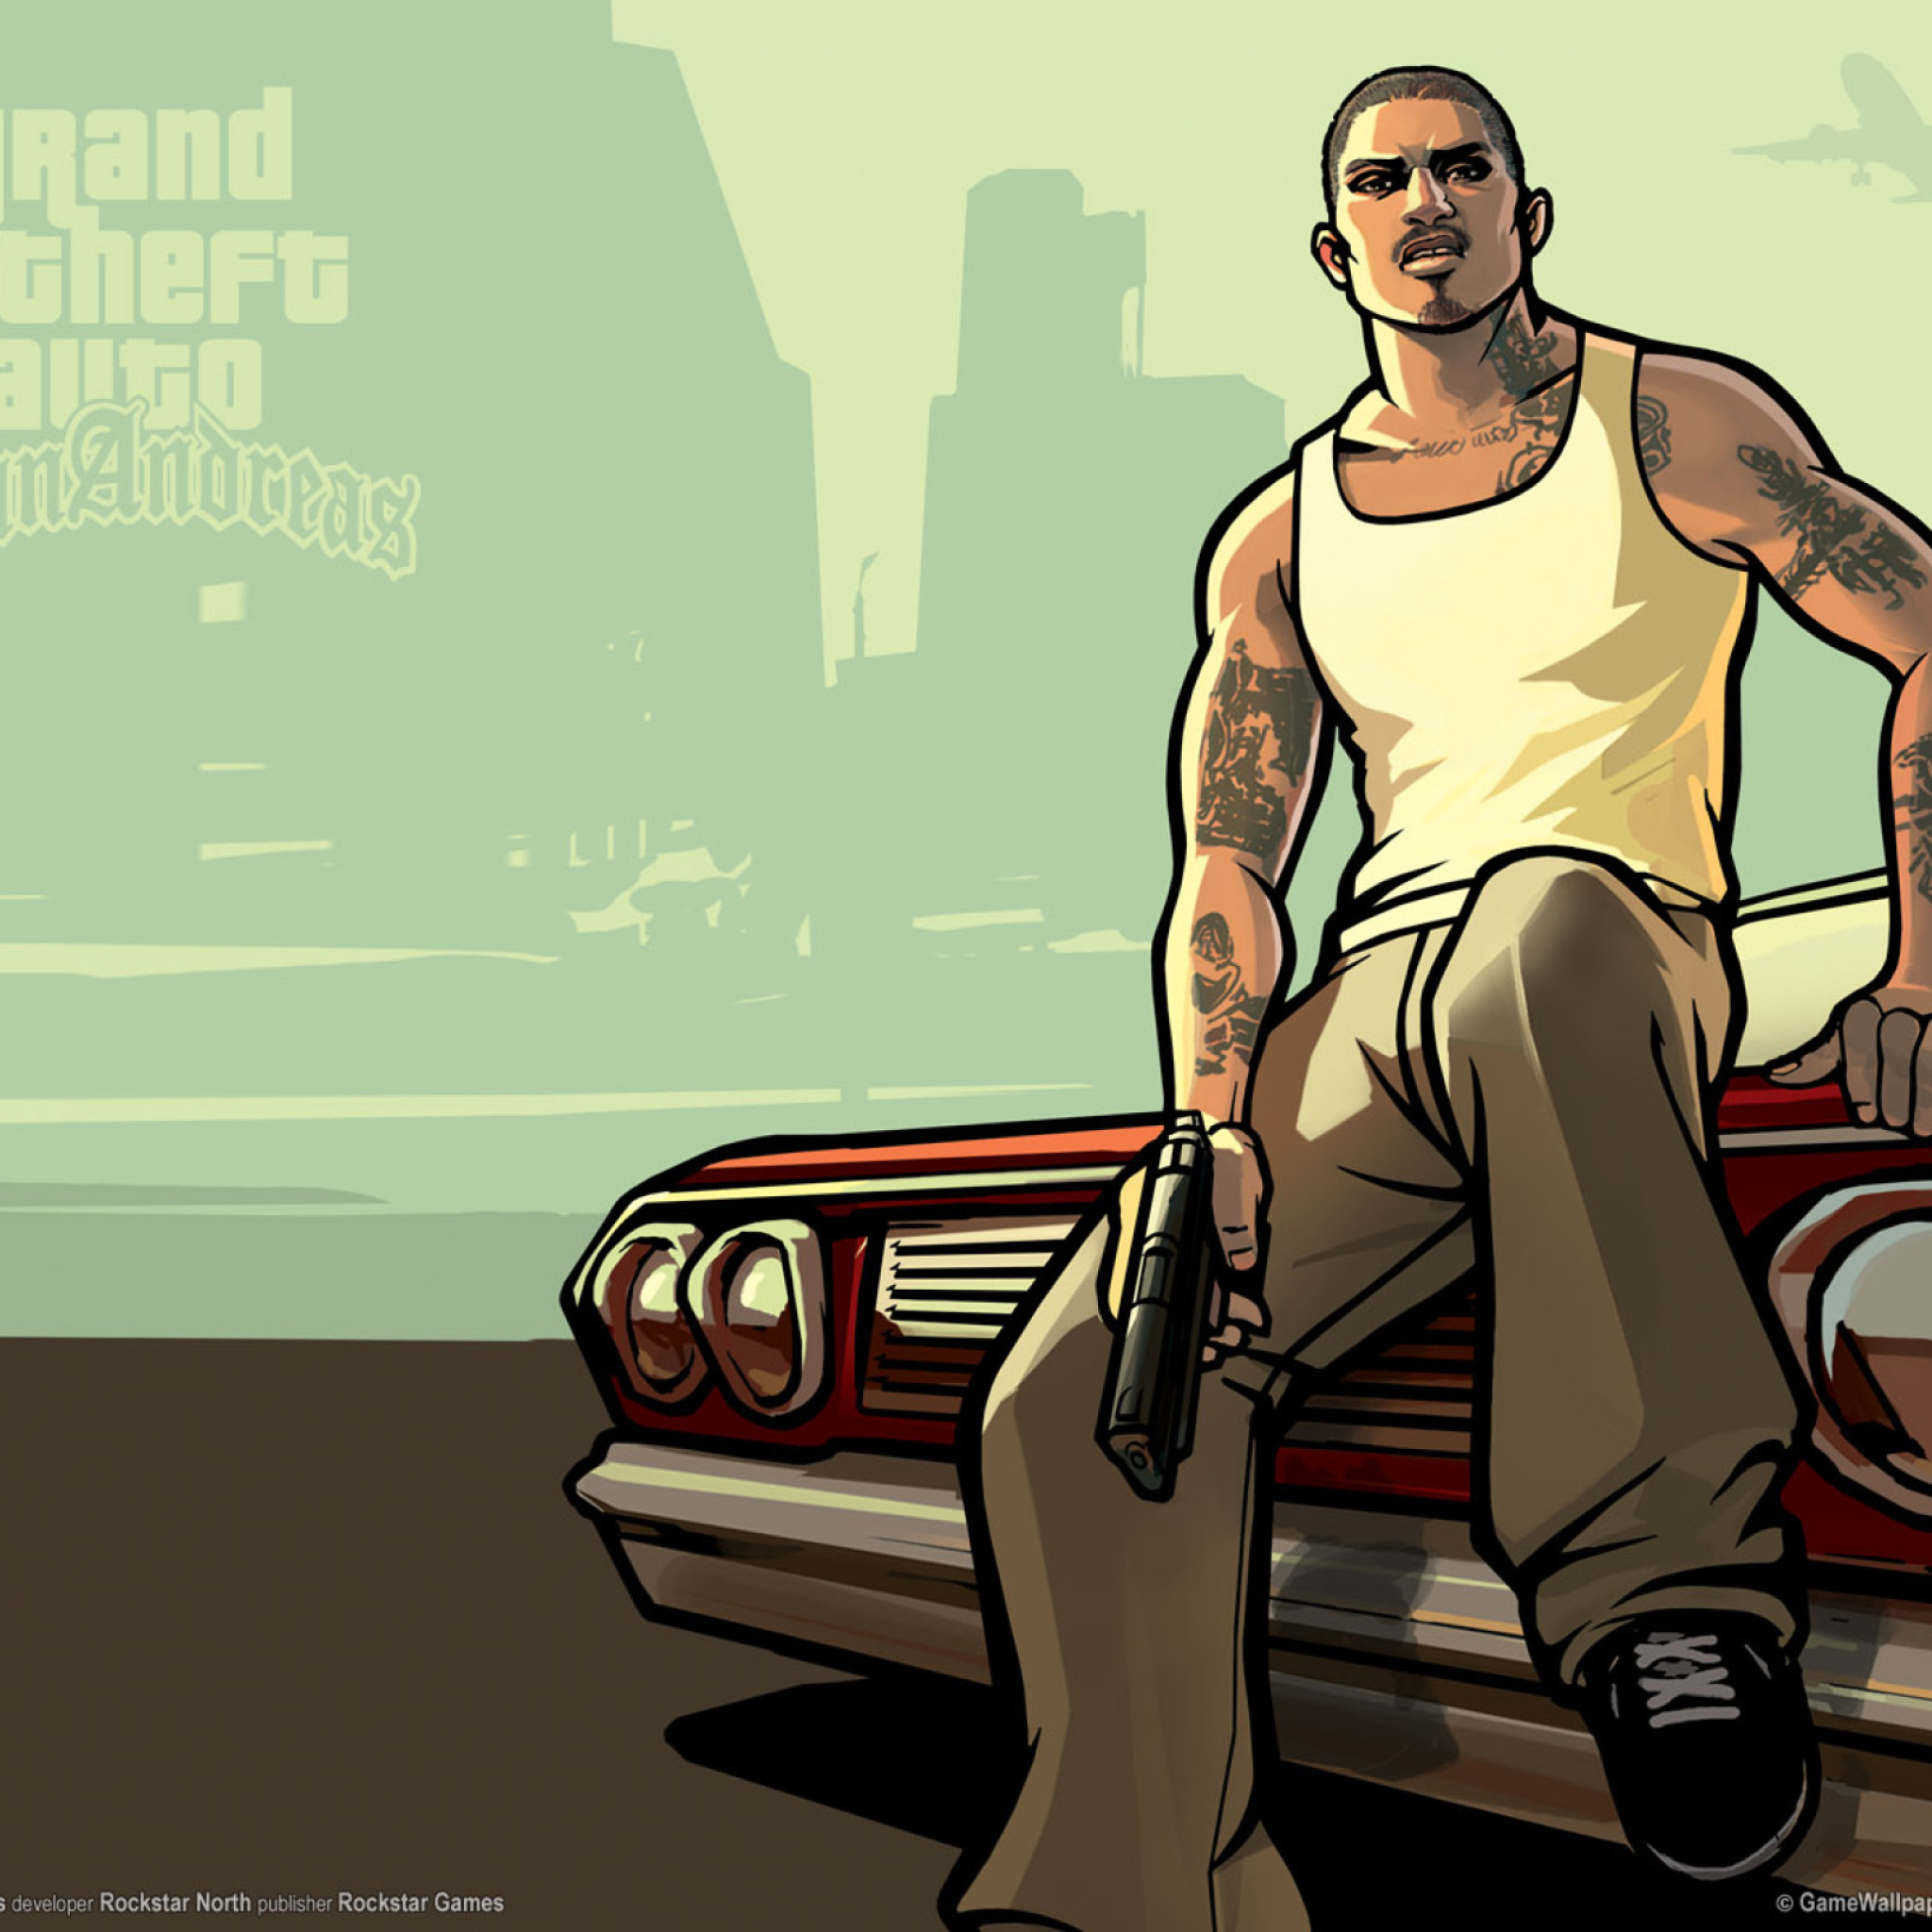 Gta San Andreas wallpaper 2048x2048